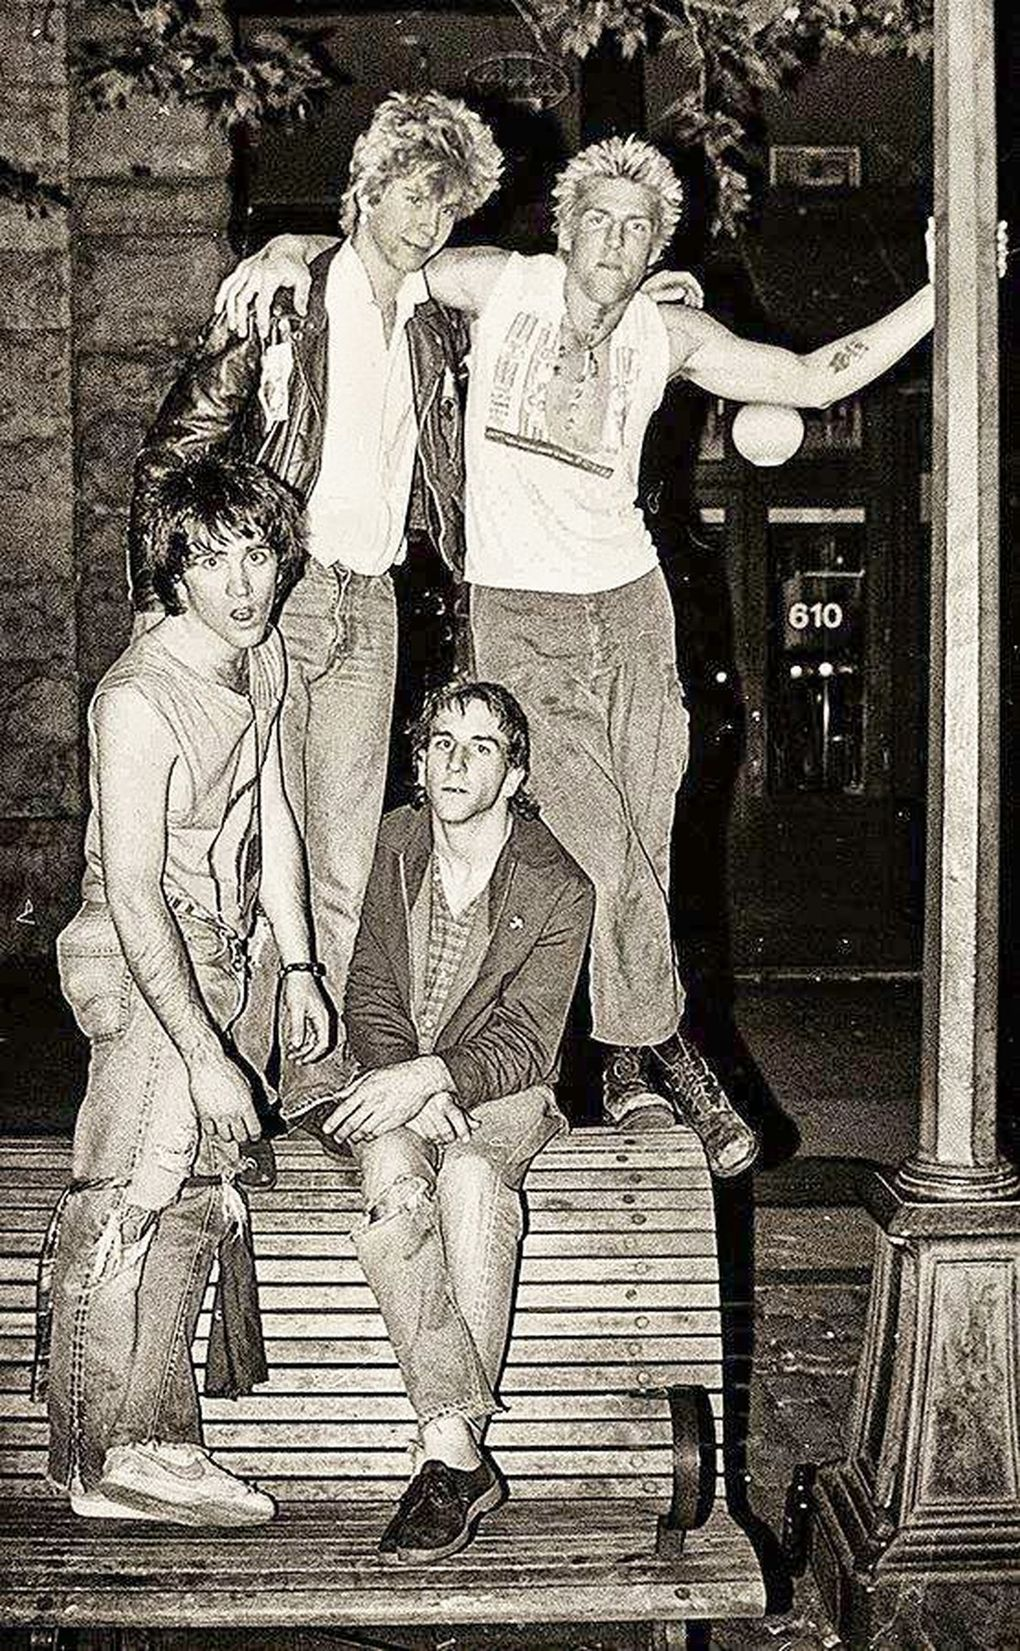 The Living in Pioneer Square in 1982. Clockwise from top left: Duff McKagan, Todd Fleischman, Greg Gilmore, John Conte. (Marty Perez)